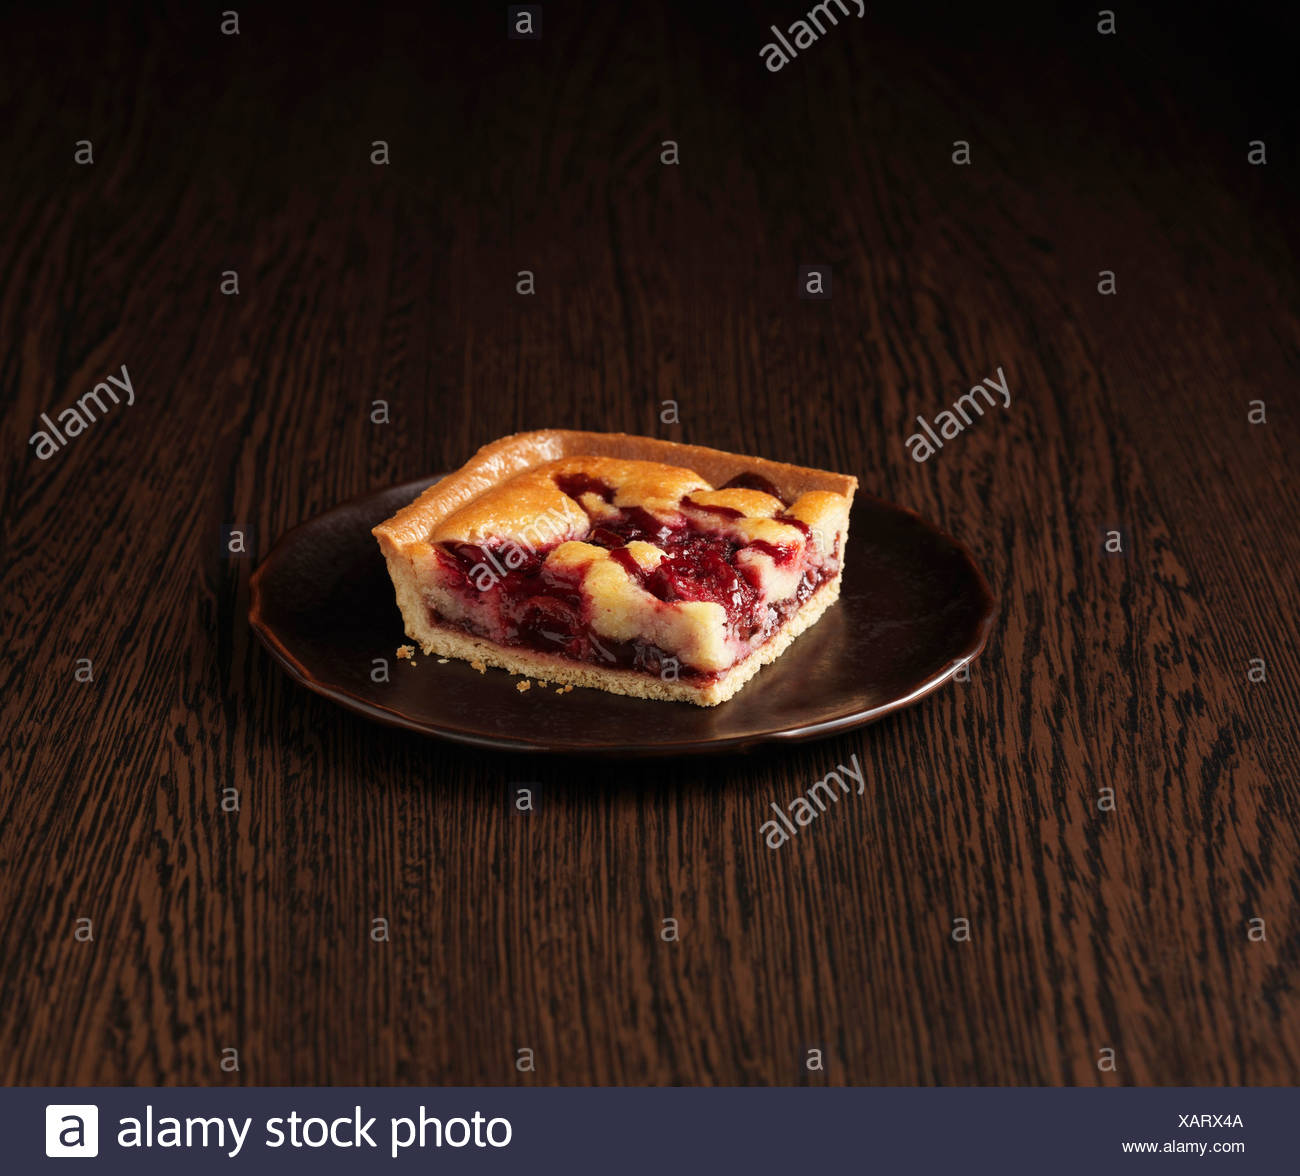 Slice of morello cherry frangipane tart - Stock Image